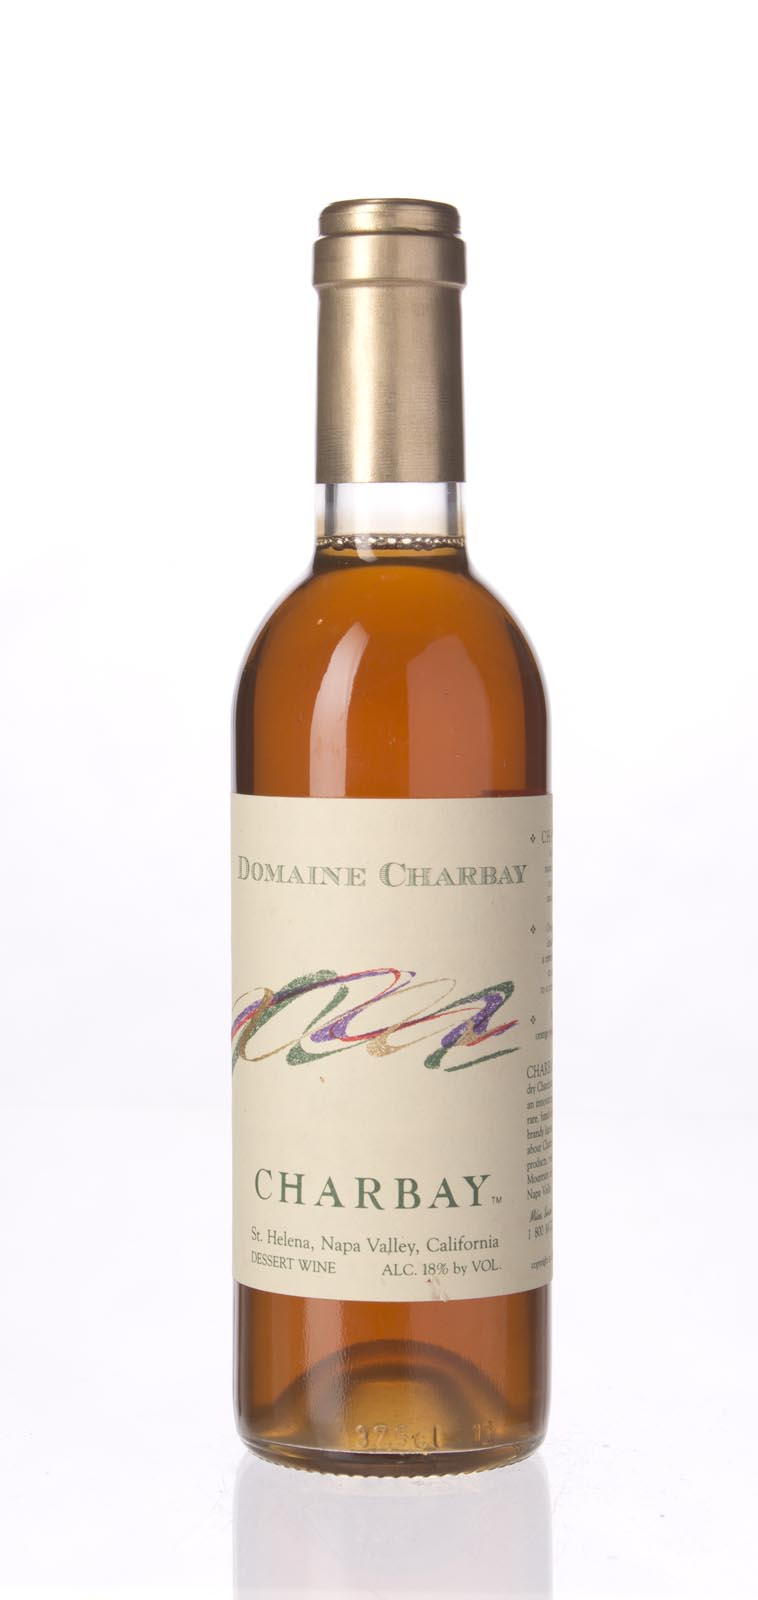 Domaine Charbay Napa Valley Dessert Wine N.V., 375ml () from The BPW - Merchants of rare and fine wines.